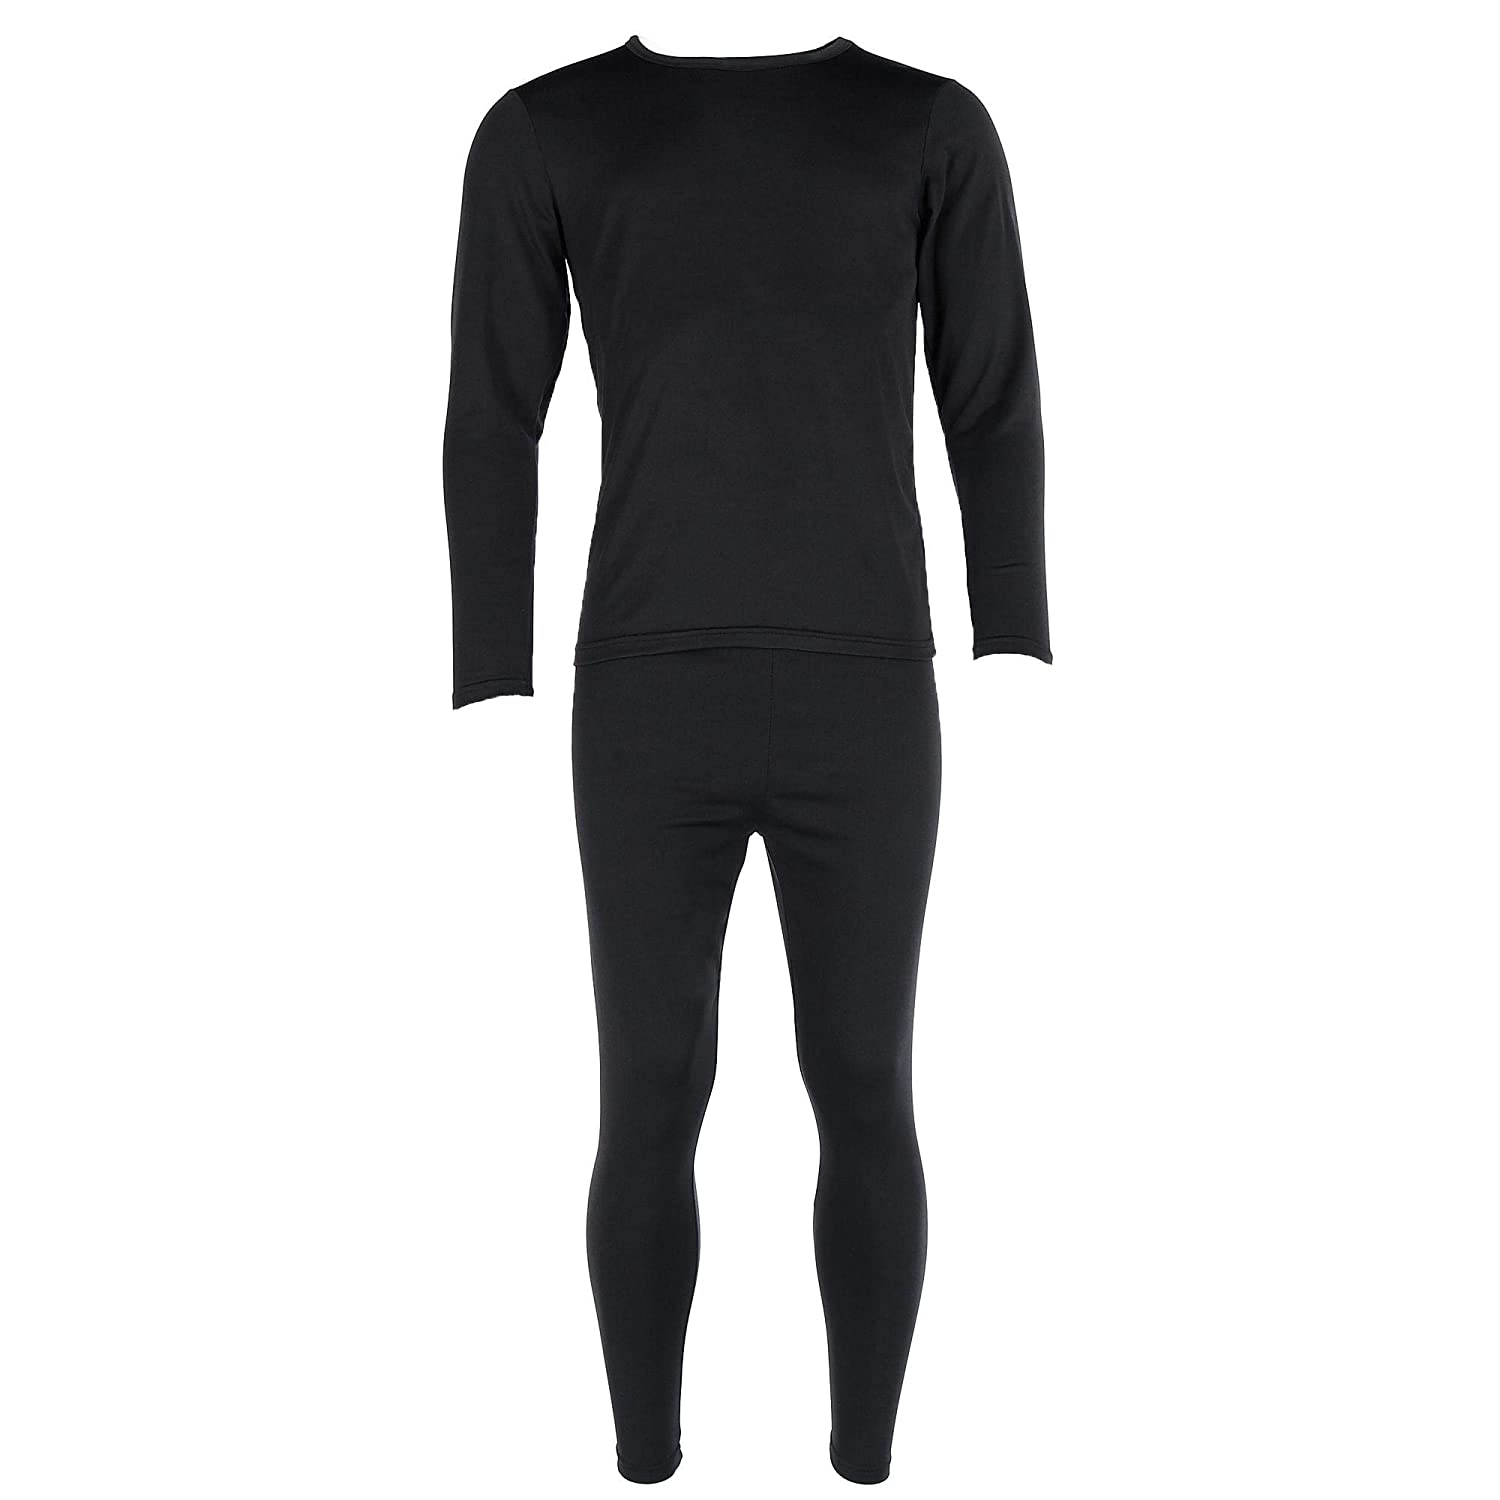 Polar Extreme Men's Brushed Base Layer Thermal Set